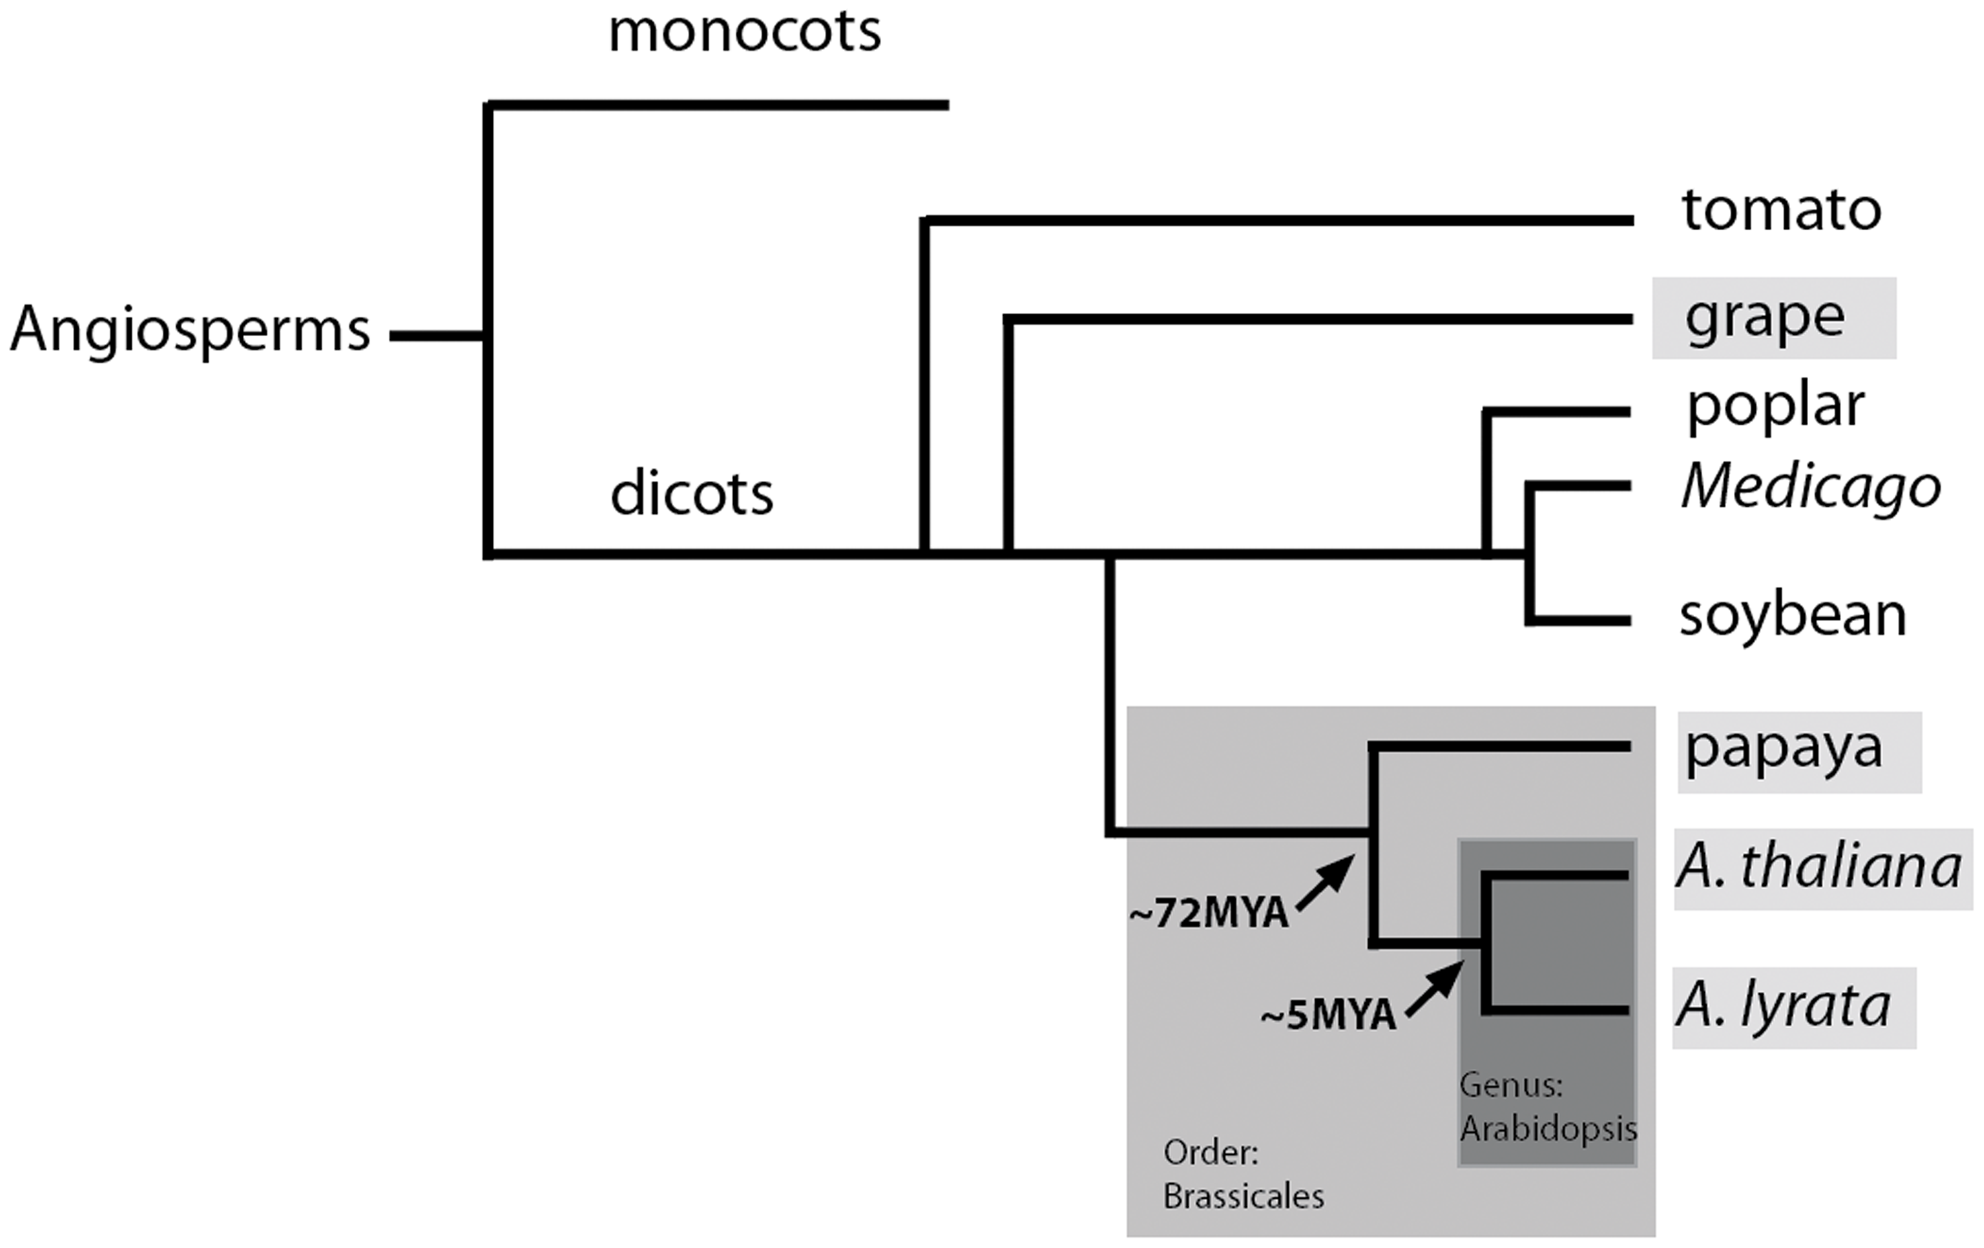 Cladogram of the key species used in this study: Arabidopsis, papaya, and grape.